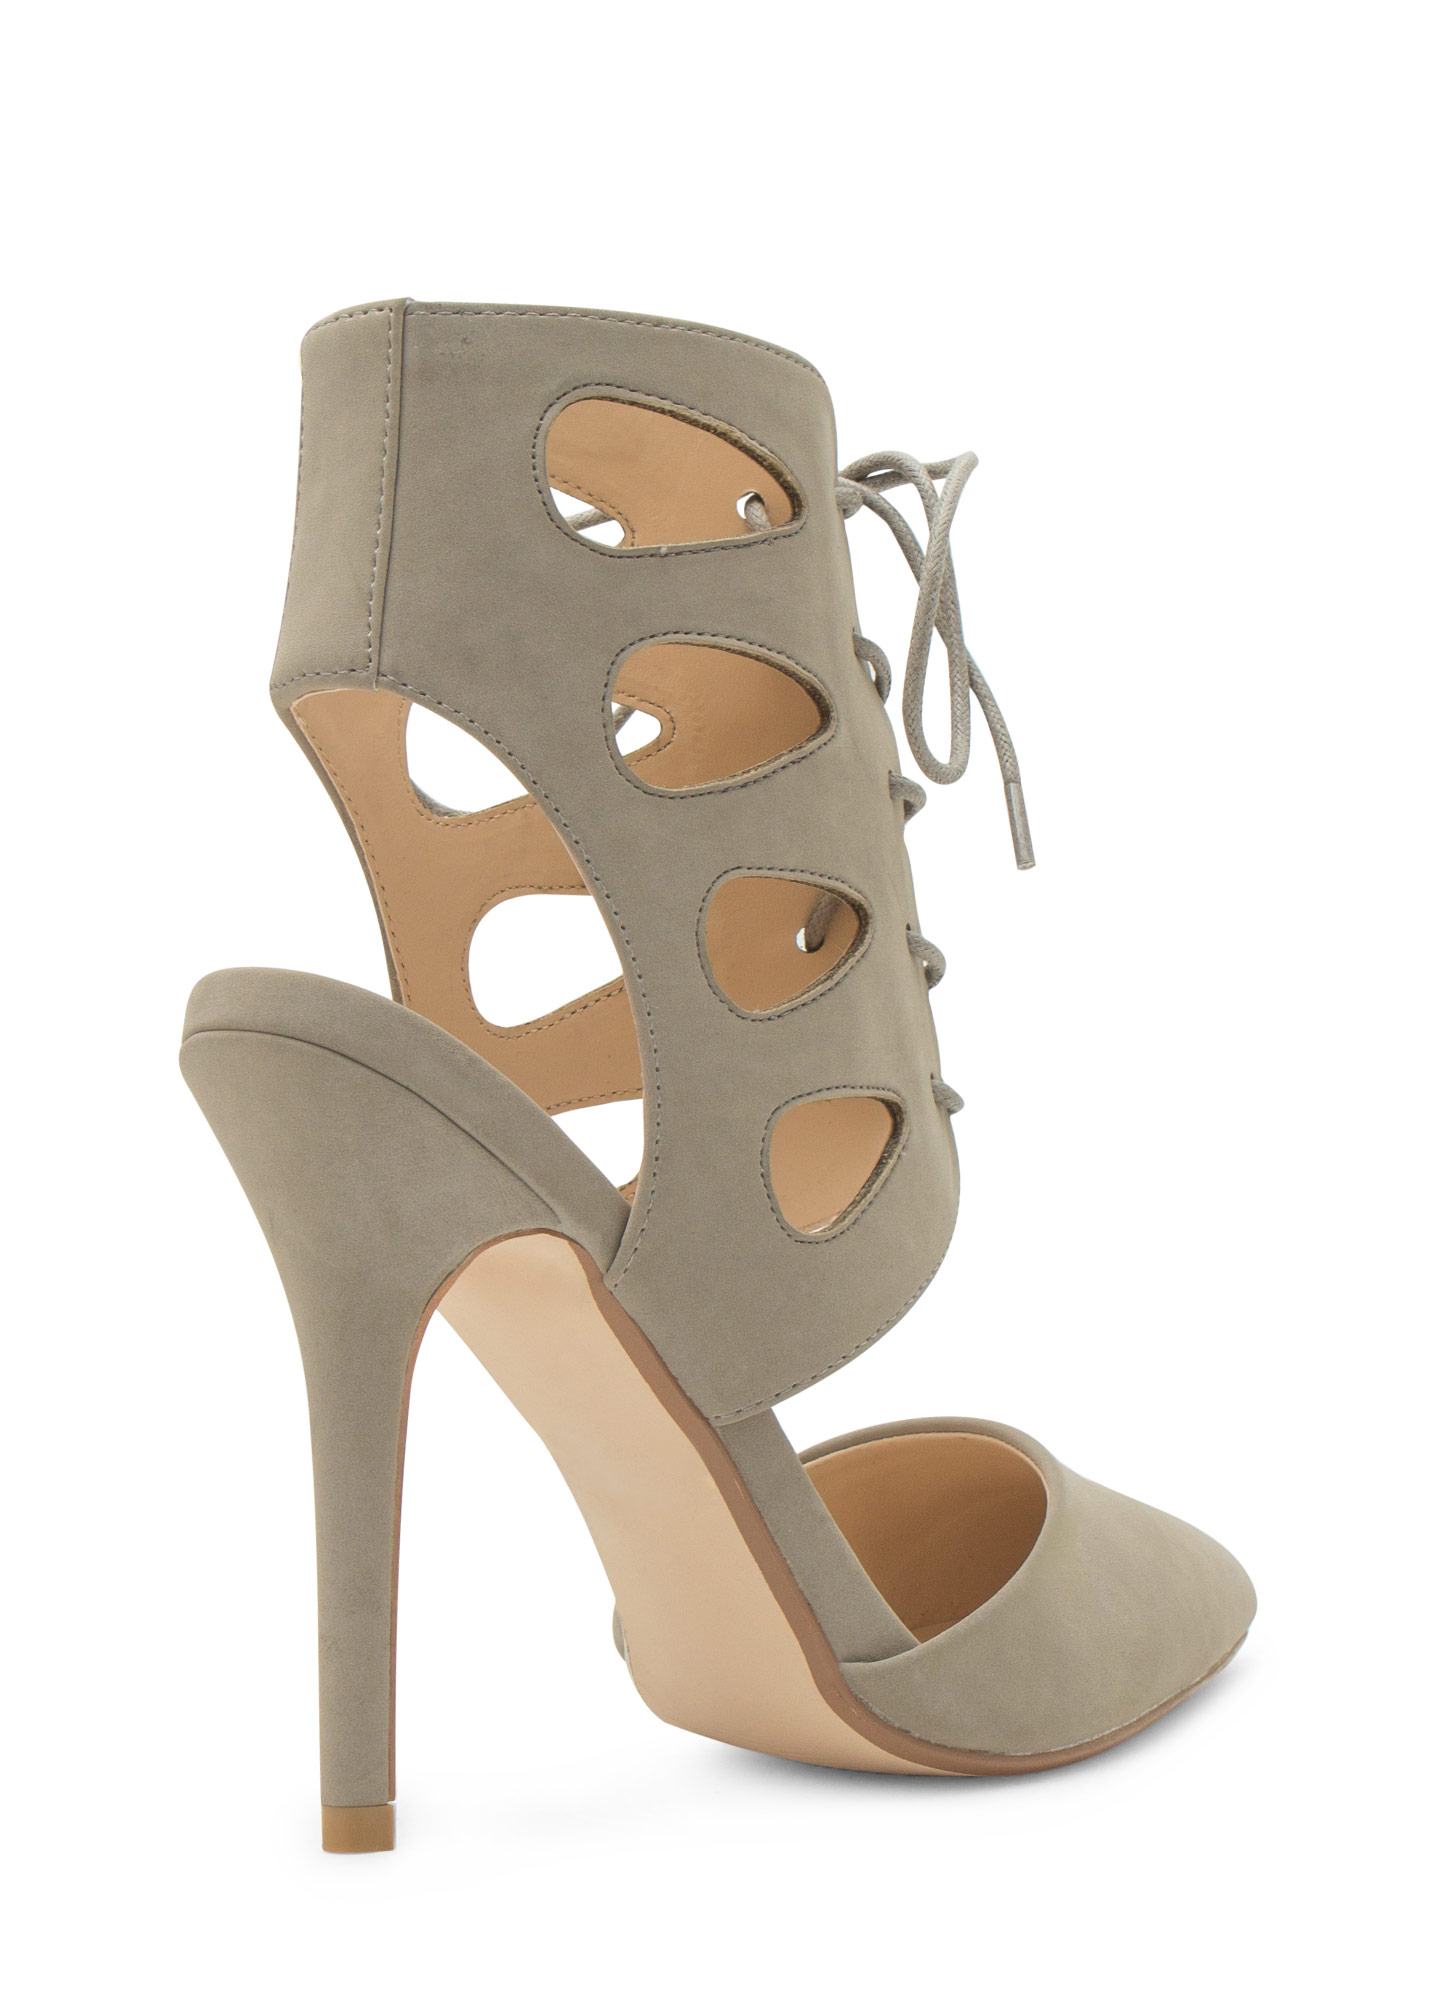 Teardrop Cut-Out Lace-Up Heels STONE